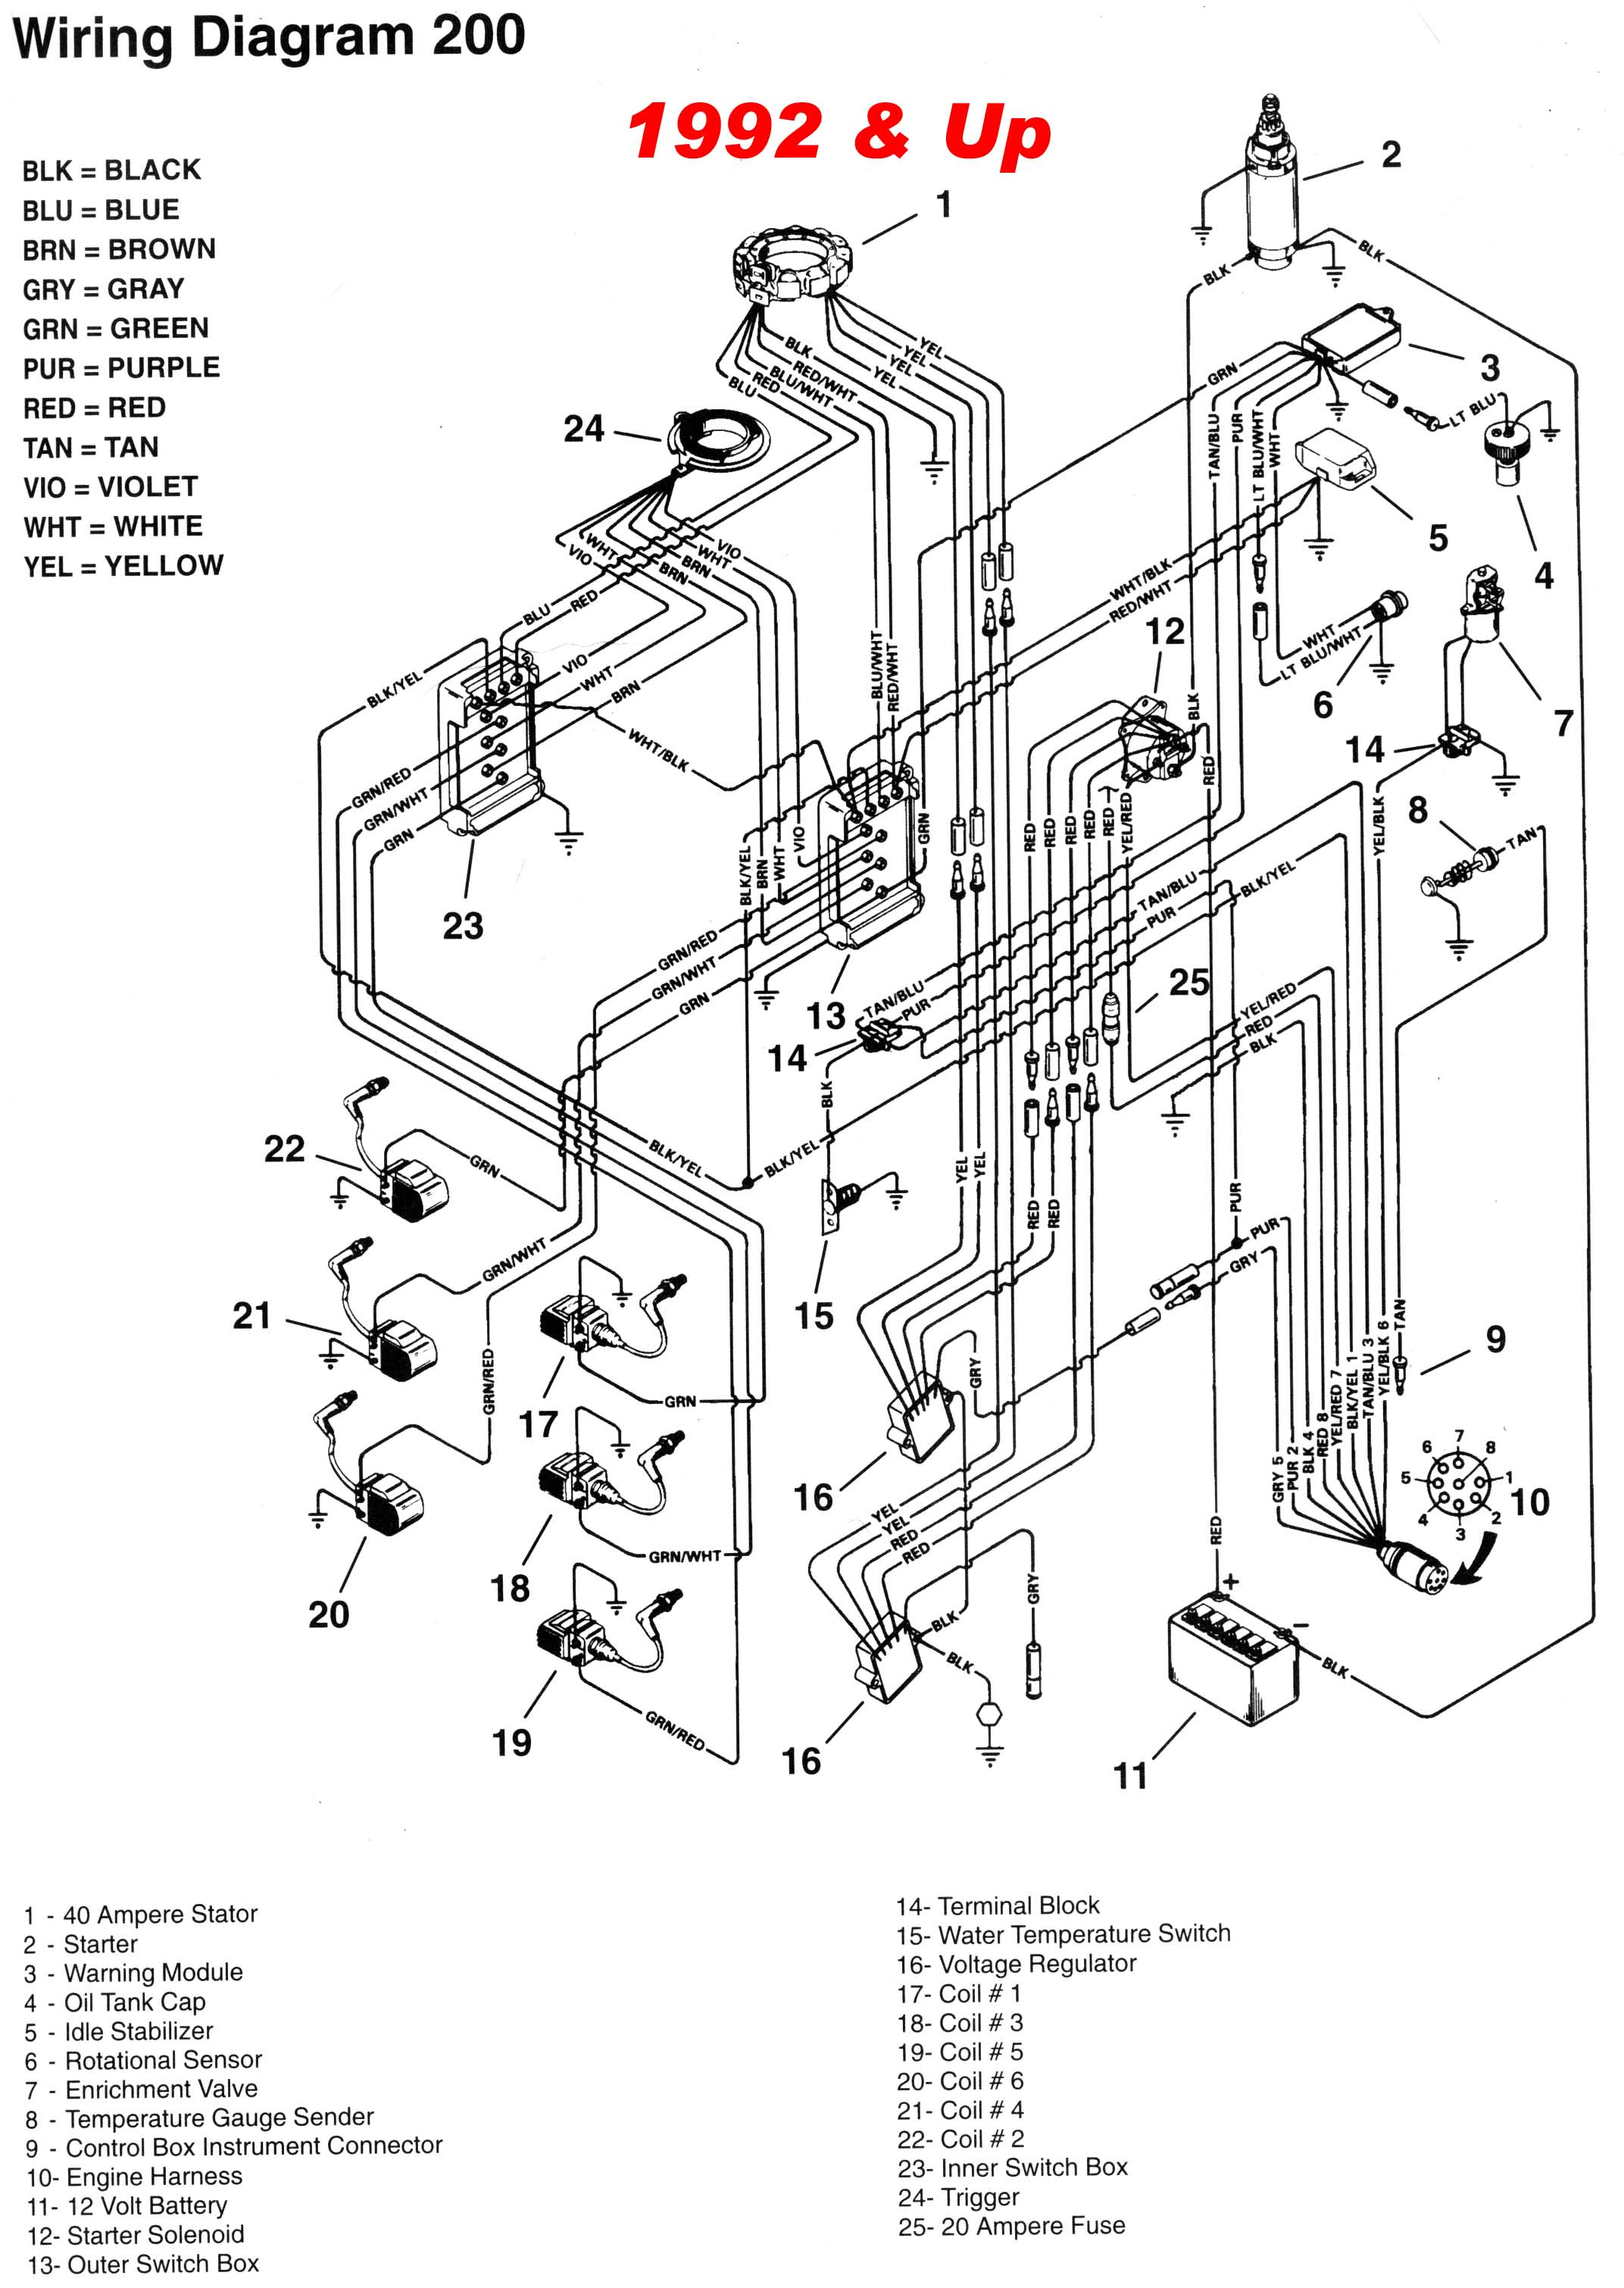 mercury_92up_200_wiring wiring diagram for 1998 mercury outboard 150 readingrat net Yamaha Outboard Logo at readyjetset.co